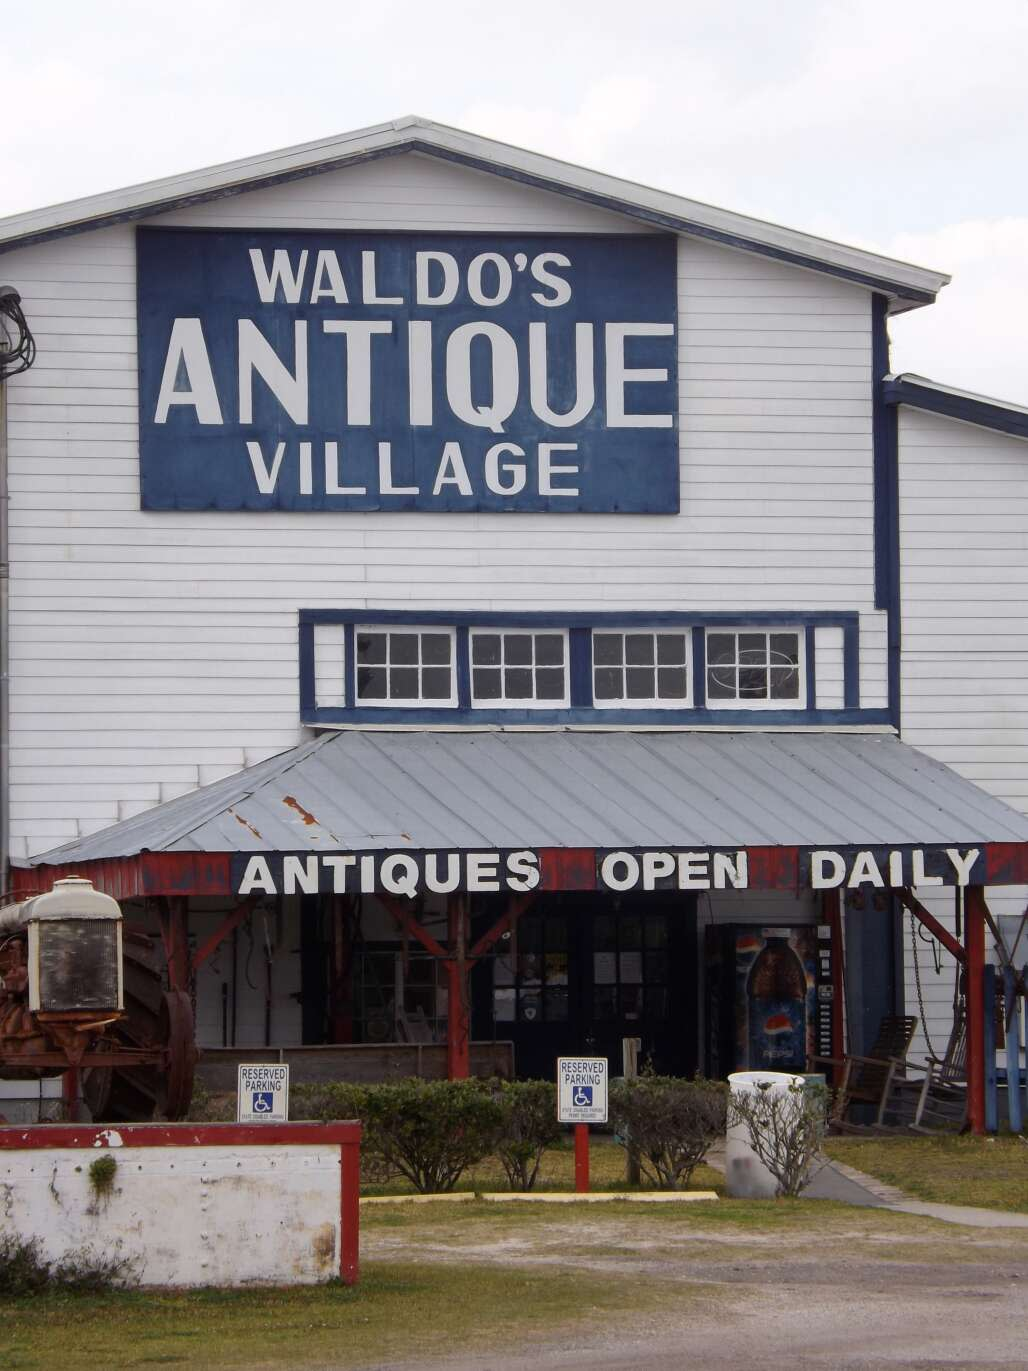 Waldo, northwest of Gainesville, was built upon a citrus industry that flagged with multiple freezes in the late 1800s. The burg got a boost in 1980 with the arrival of the Waldo Farmer's & Flea Market, a 50-acre complex featuring 900 dealers and a 20,000 square-foot antiques mall.